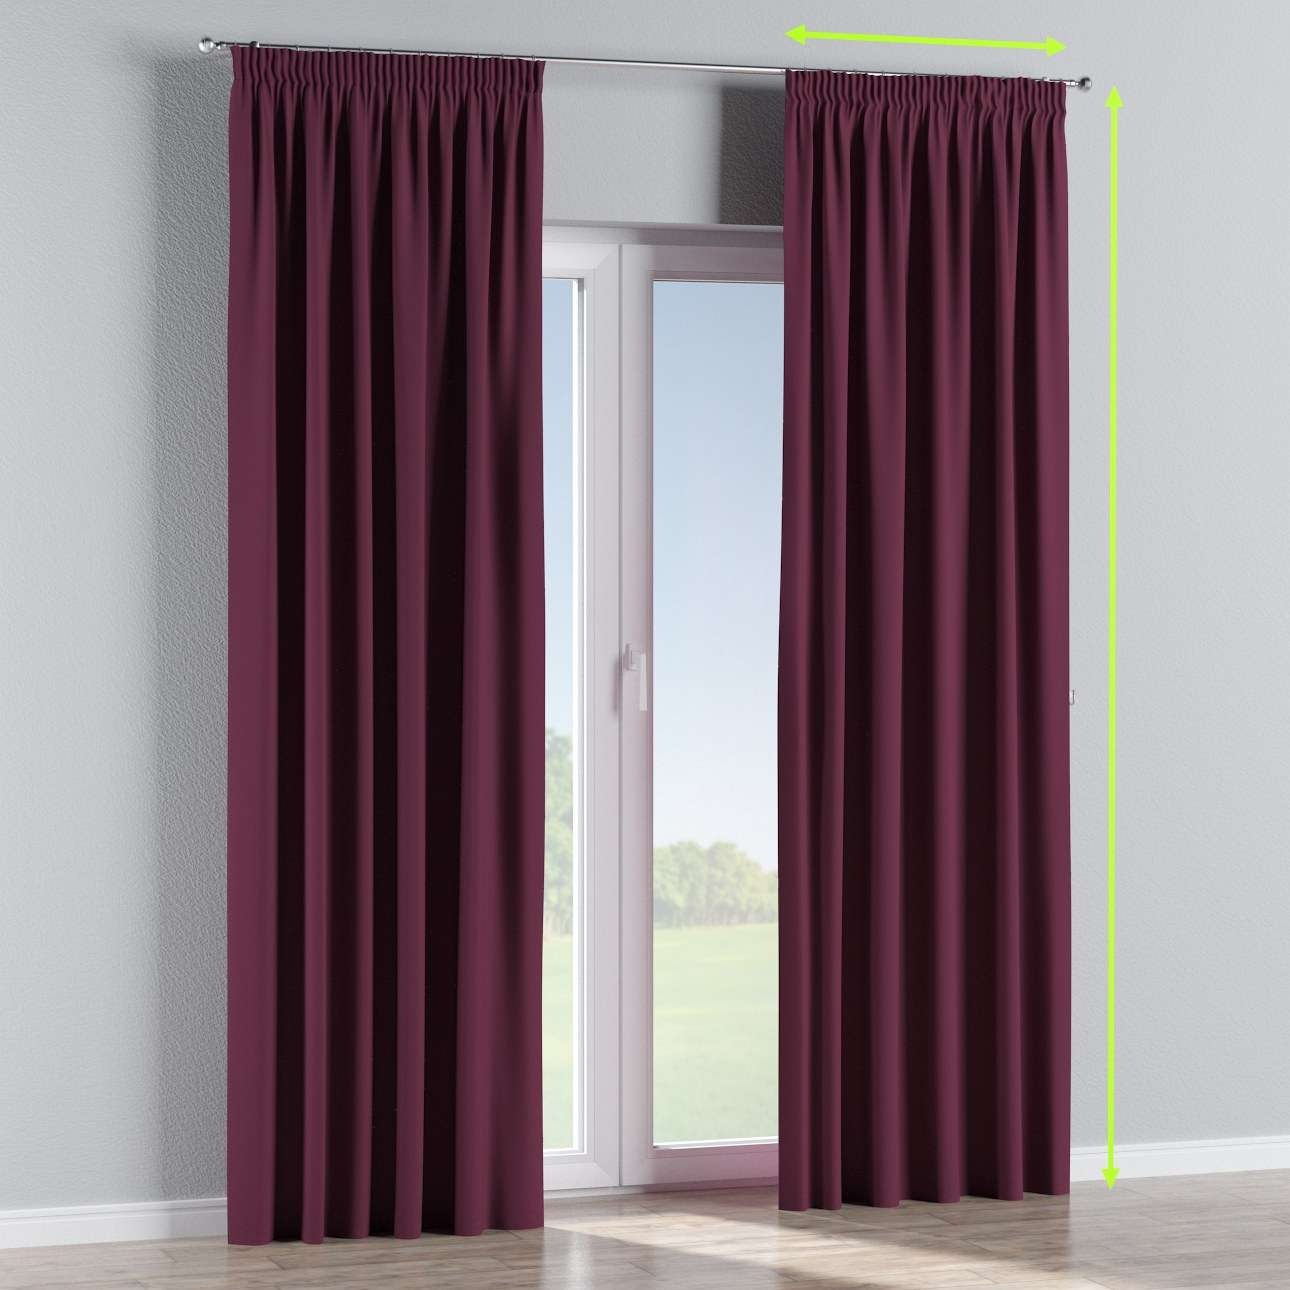 Blackout pencil pleat curtain in collection Blackout, fabric: 269-53